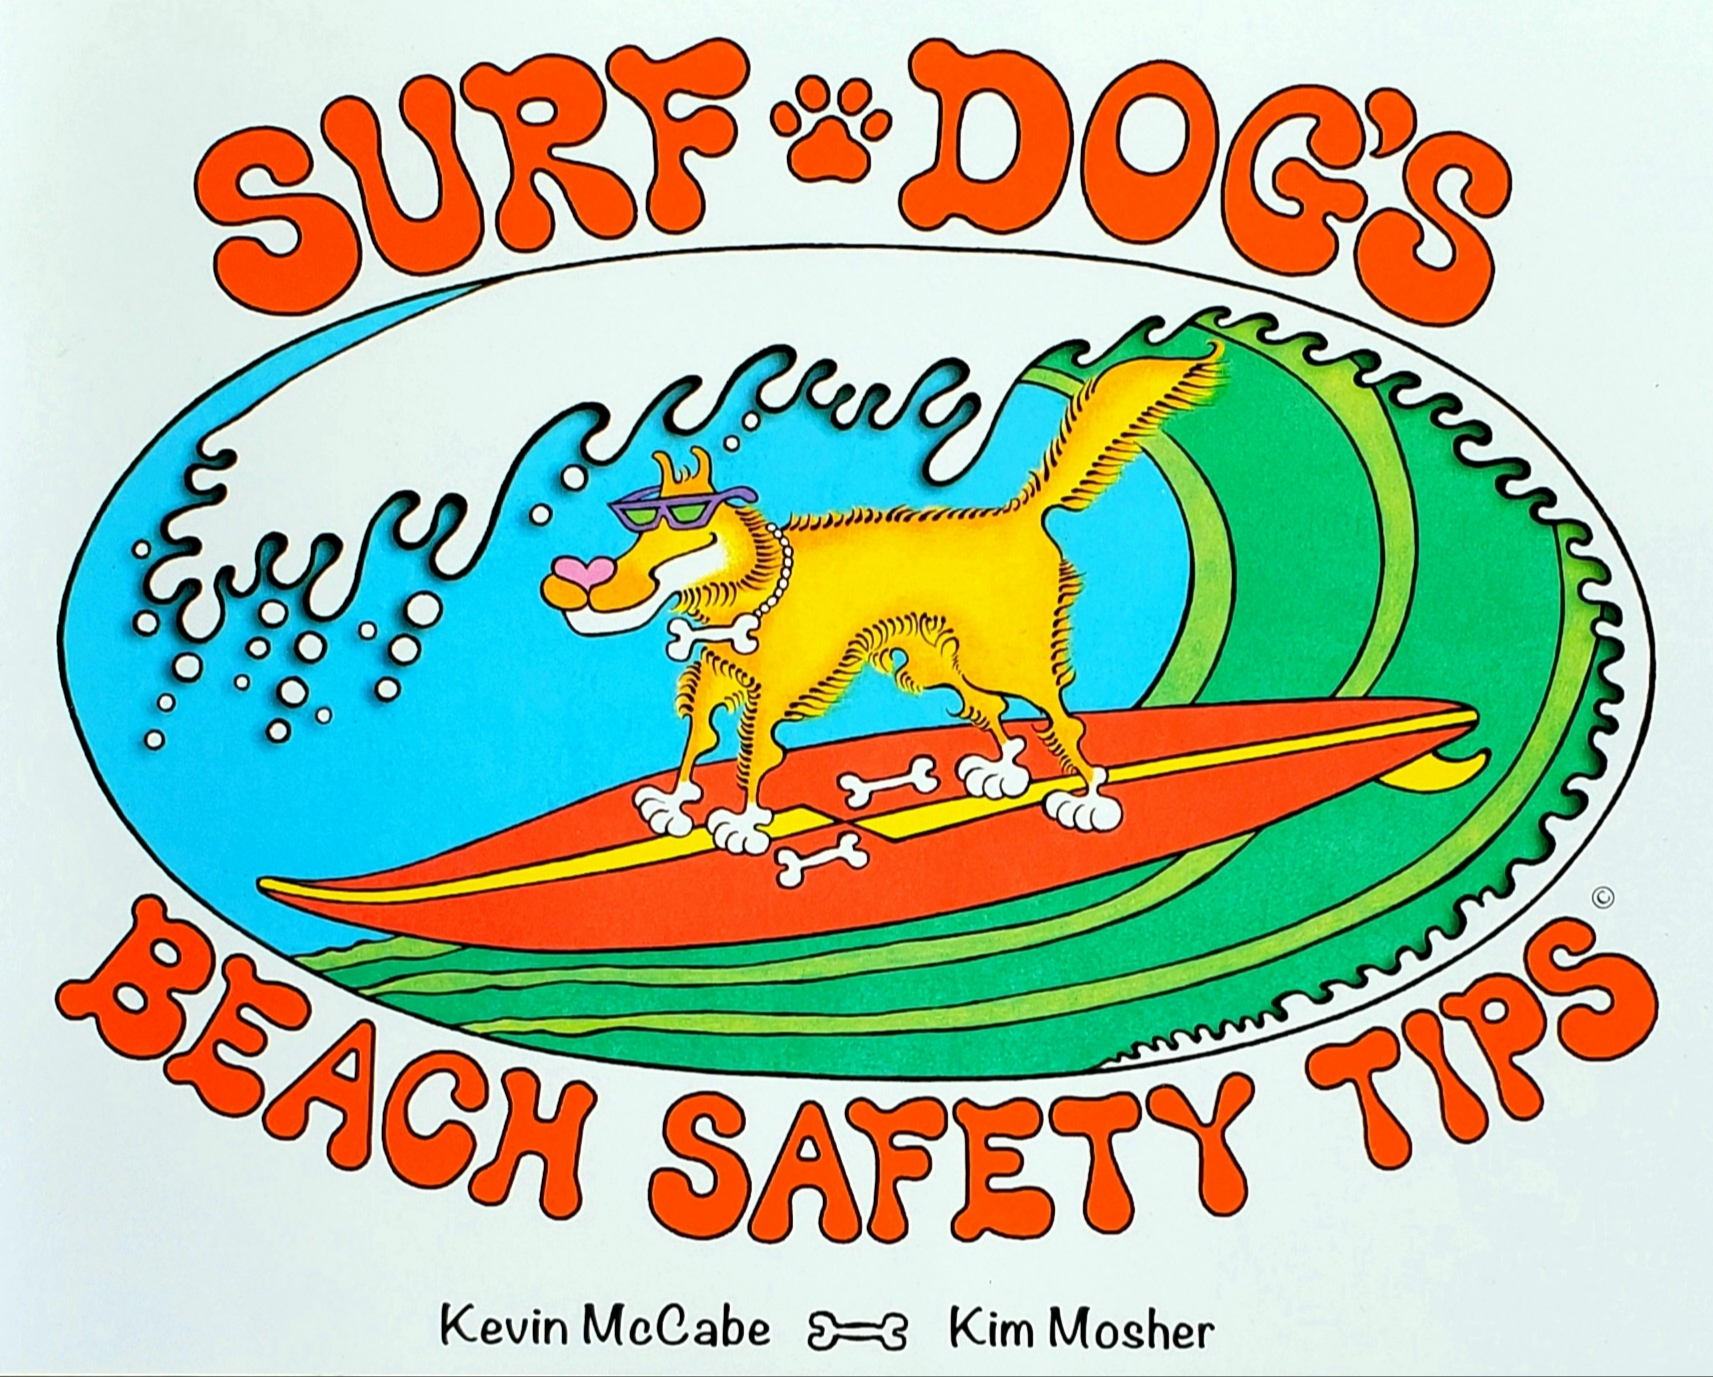 """The cover image of """"SURF DOG'S BEACH SAFETY TIPS,"""" featuring a golden haired dog with sunglasses and a bone collar surfing on a red surfboard."""